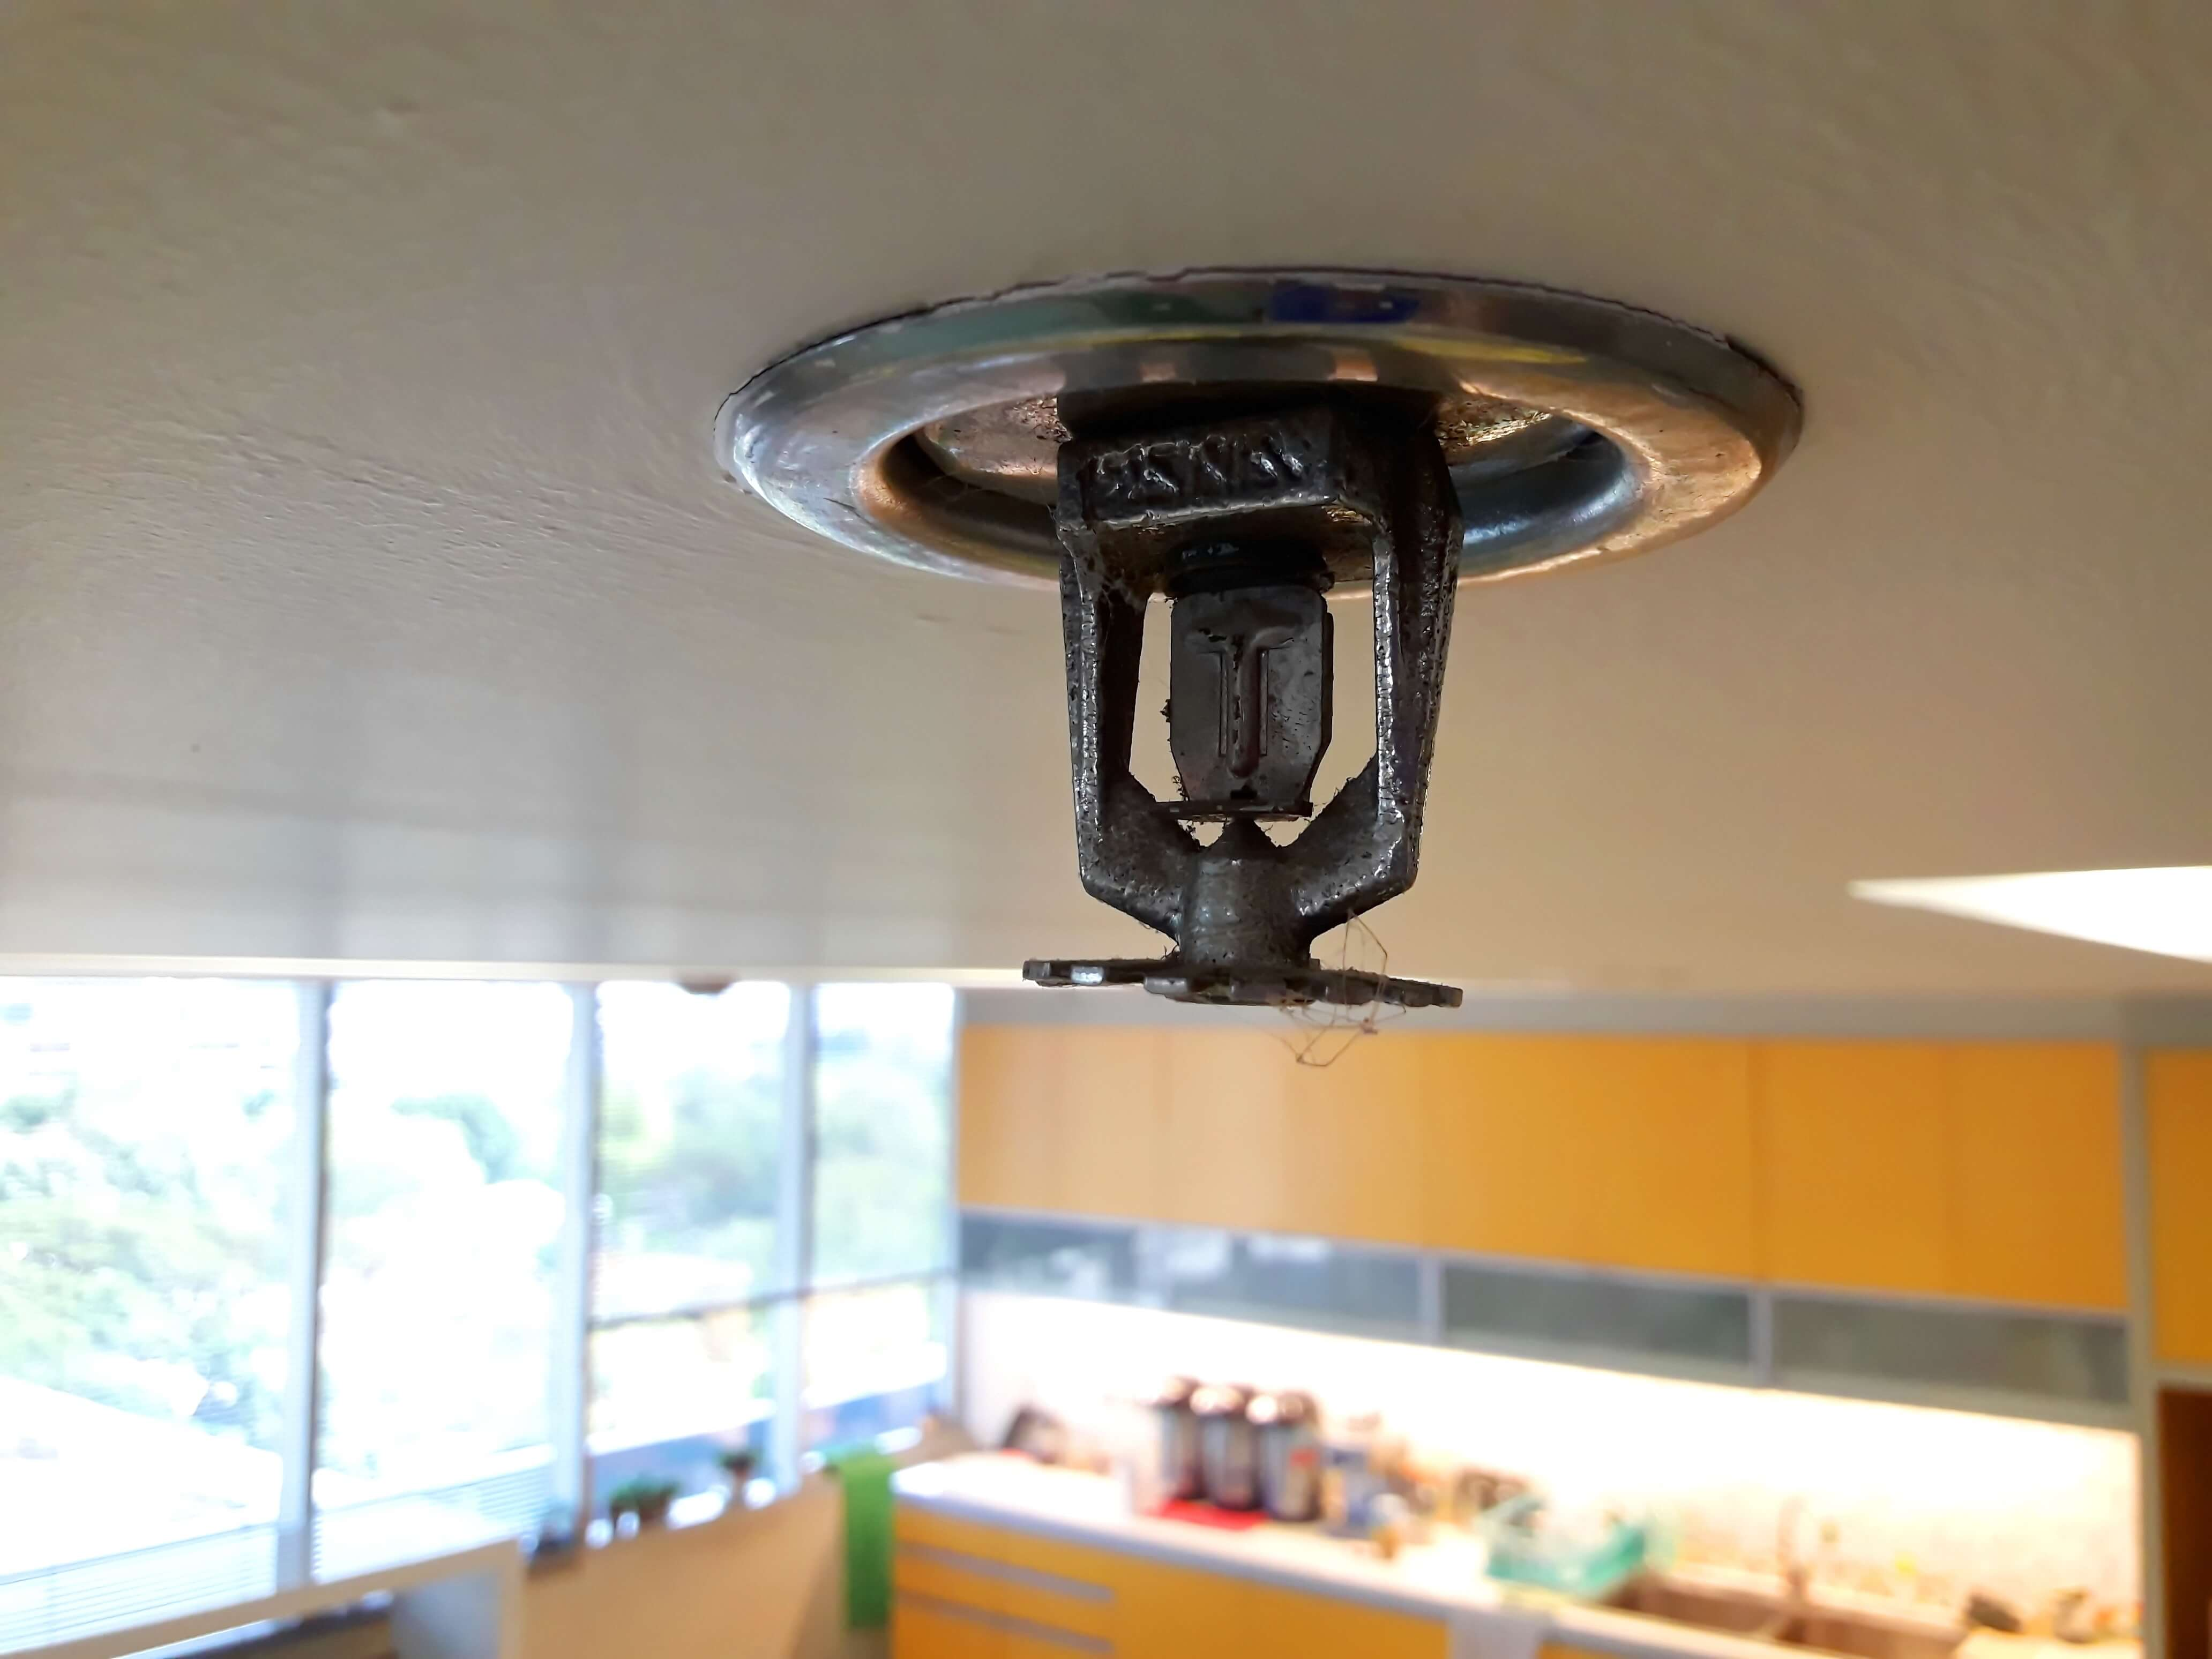 Wet Sprinkler Systems in Commercial Kitchens